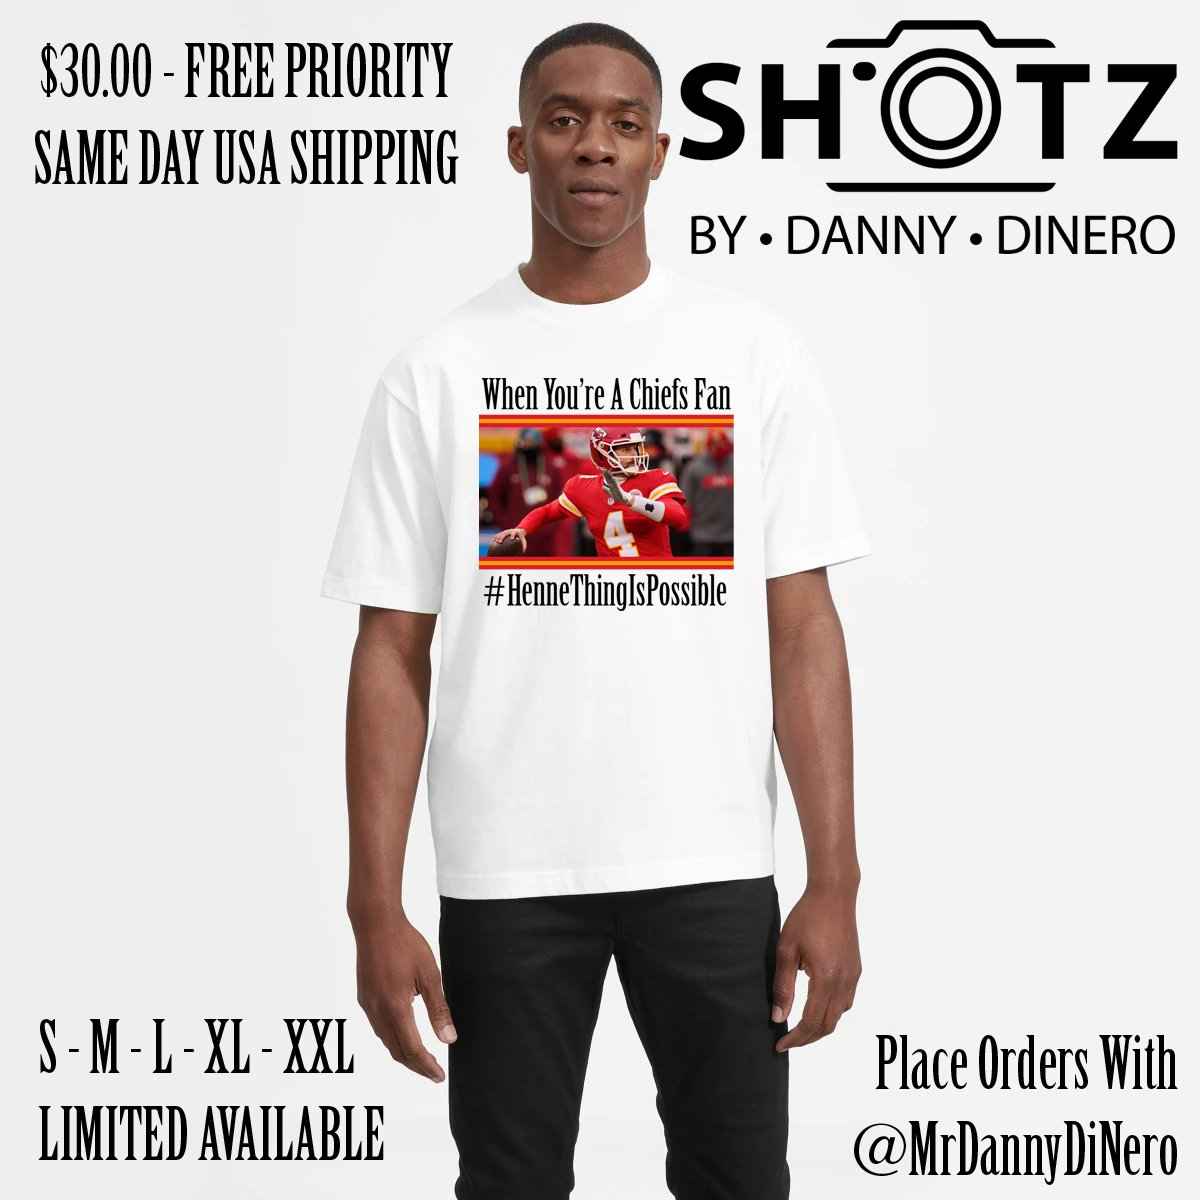 LIMITED #HENNETHINGISPOSSIBLE T-SHIRT. $30 INCLUDES PRIORITY USA SHIPPING. ALL SIZES AVAILABLE.  GET YOUR @CHIEFS GEAR NOW FOR KICK-OFF NEXT WEEKEND. ORDER TODAY. SHIPS TODAY. CONTACT @MRDANNYDINERO FOR ORDERS.